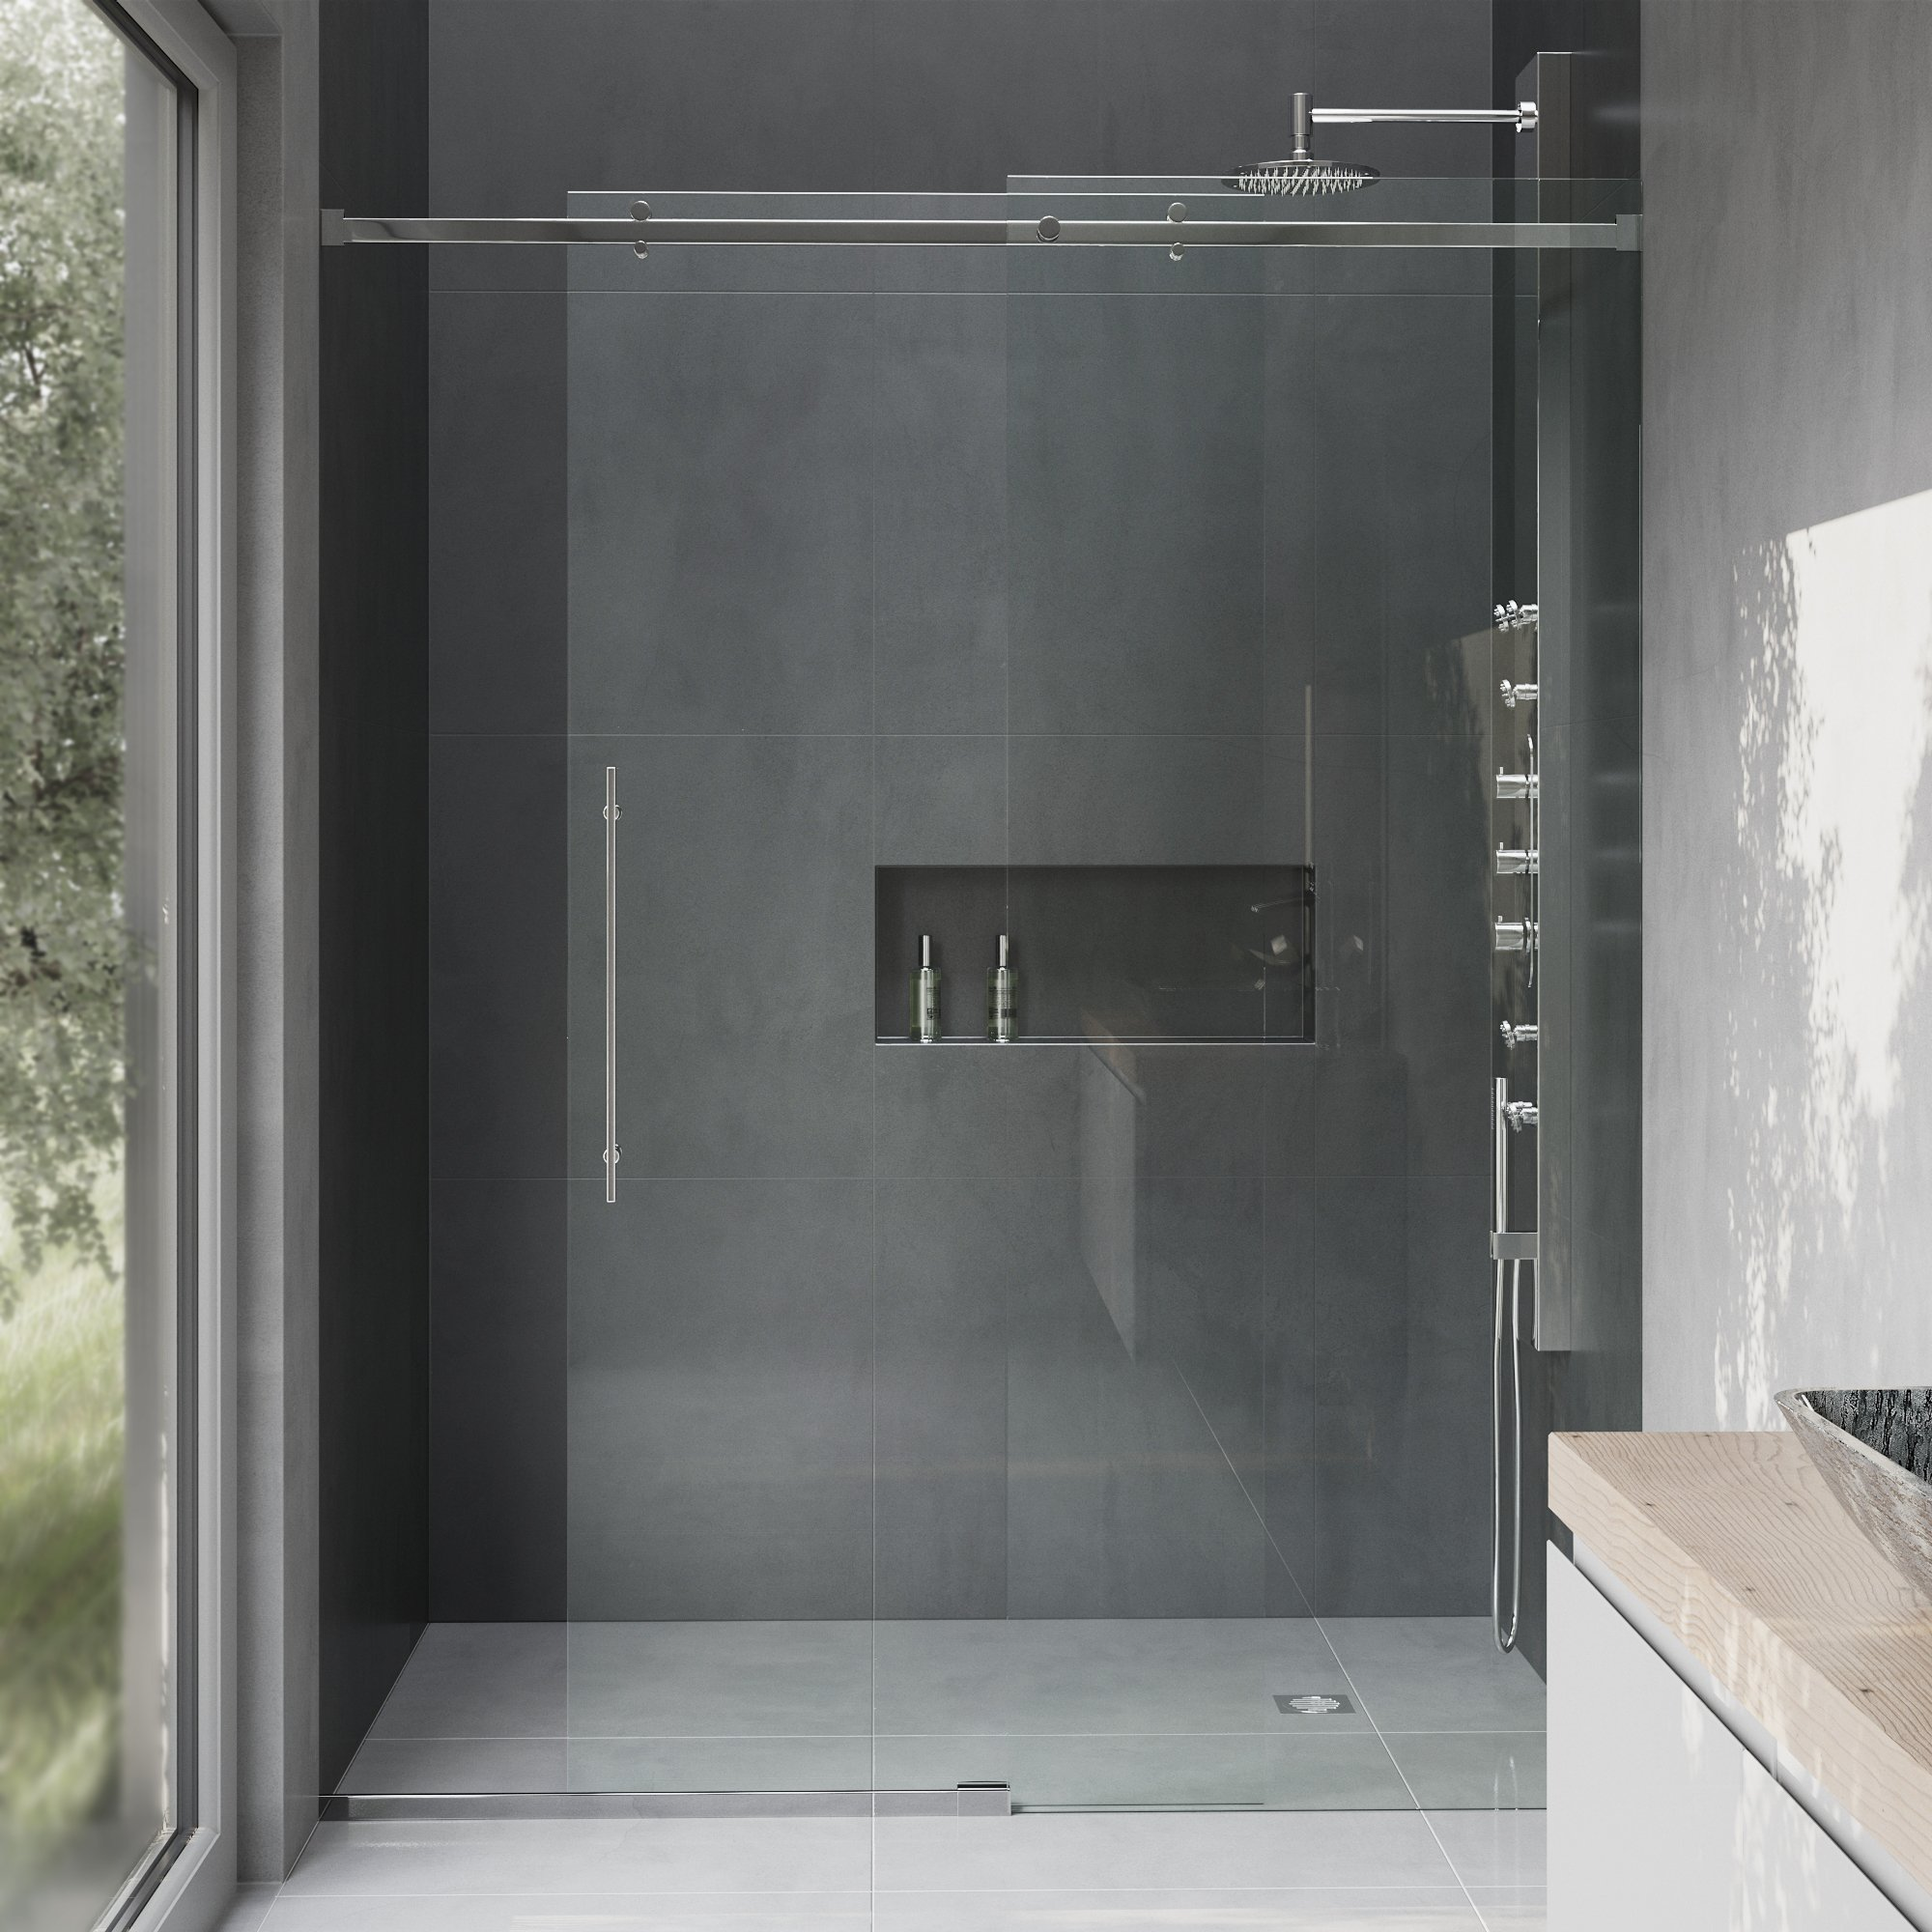 VIGO Luca 56 to 60-in. Frameless Sliding Shower Door with .375-in. Clear Glass and Chrome Hardware by Vigo (Image #1)